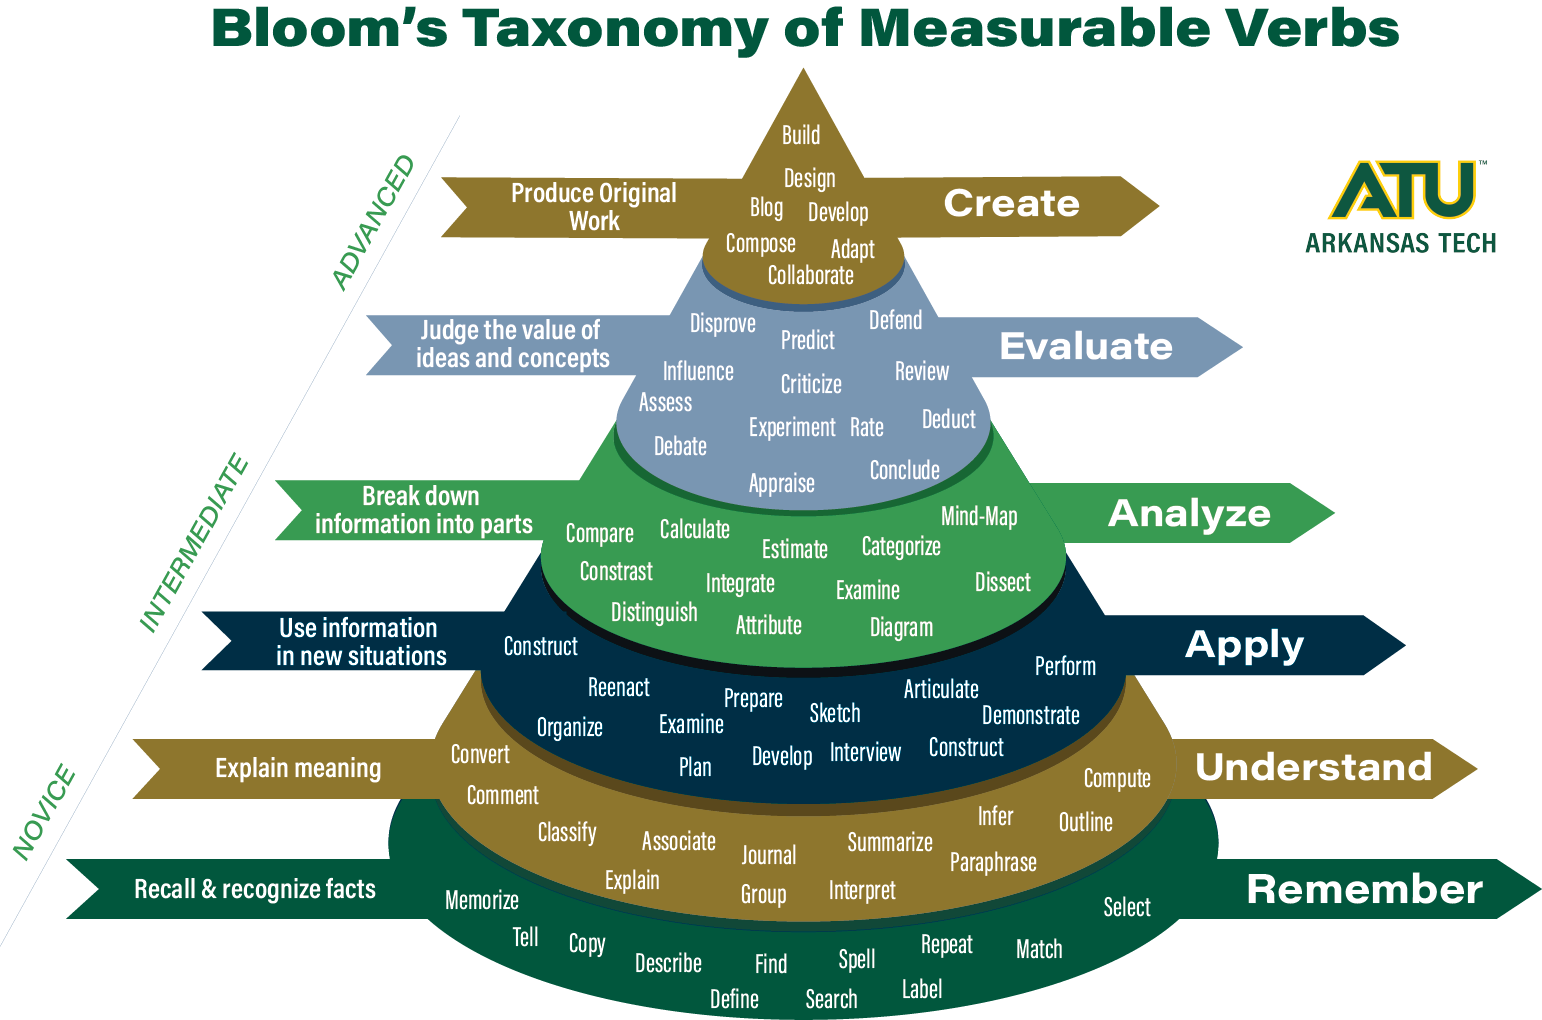 Bloom's Taxonomy at ATU graphic